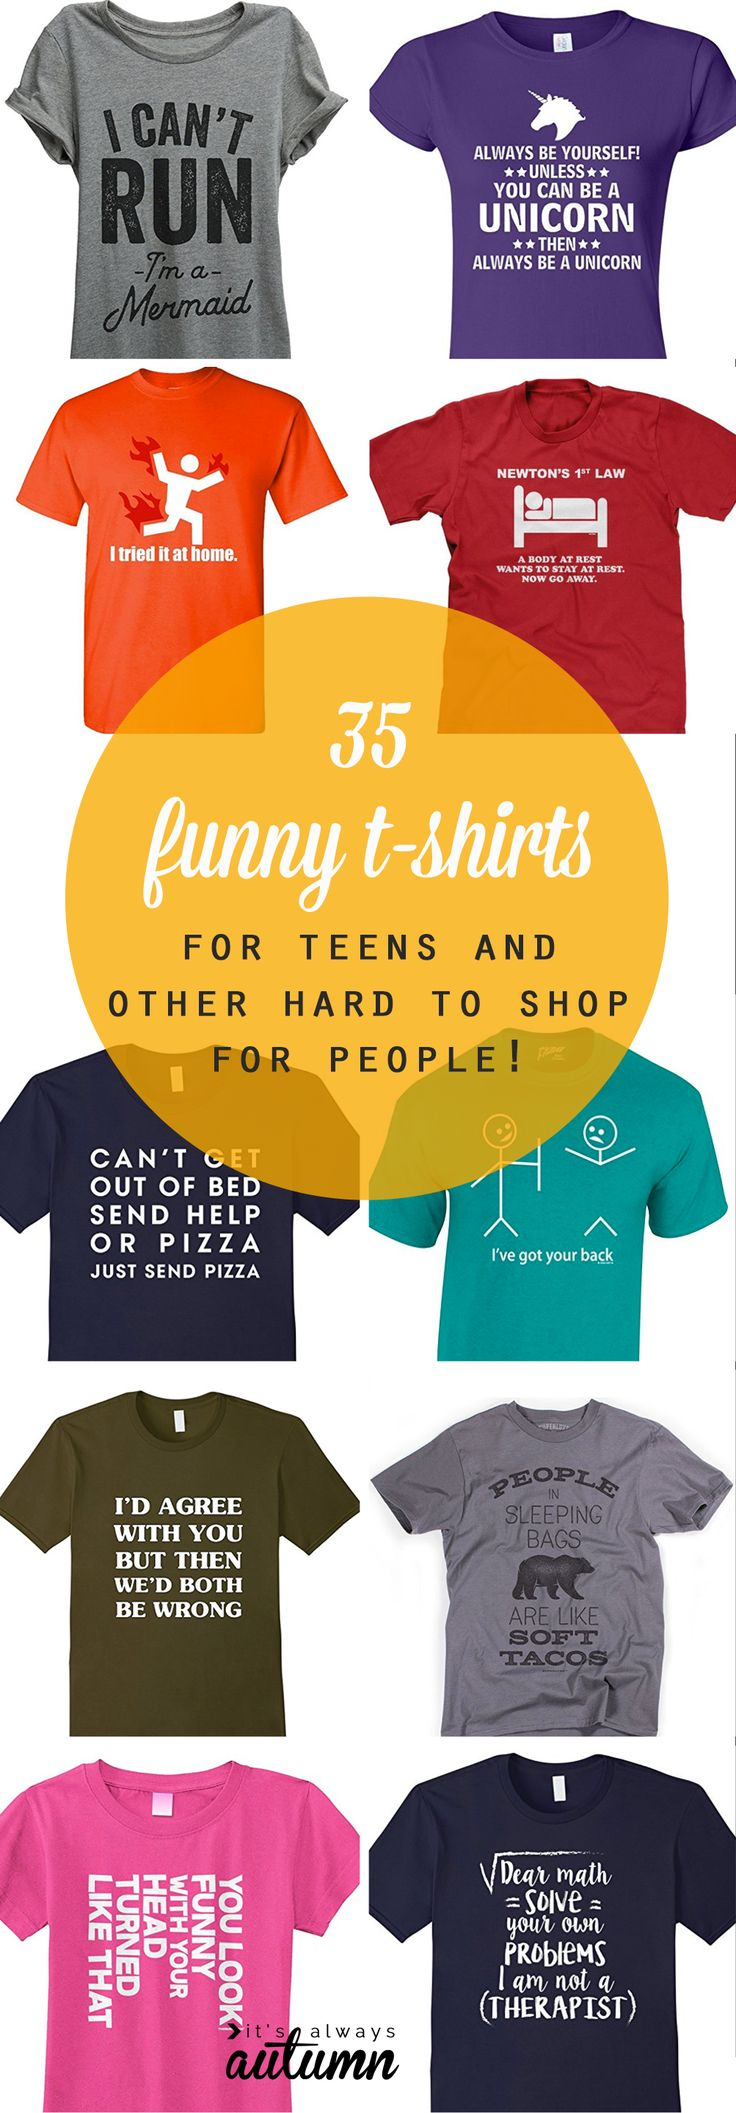 Huge list of funny t-shirts for guys, girls, teenagers, men, or anyone else who's hard to shop for. Great Christmas gift ideas for teens. Funny tee shirts.